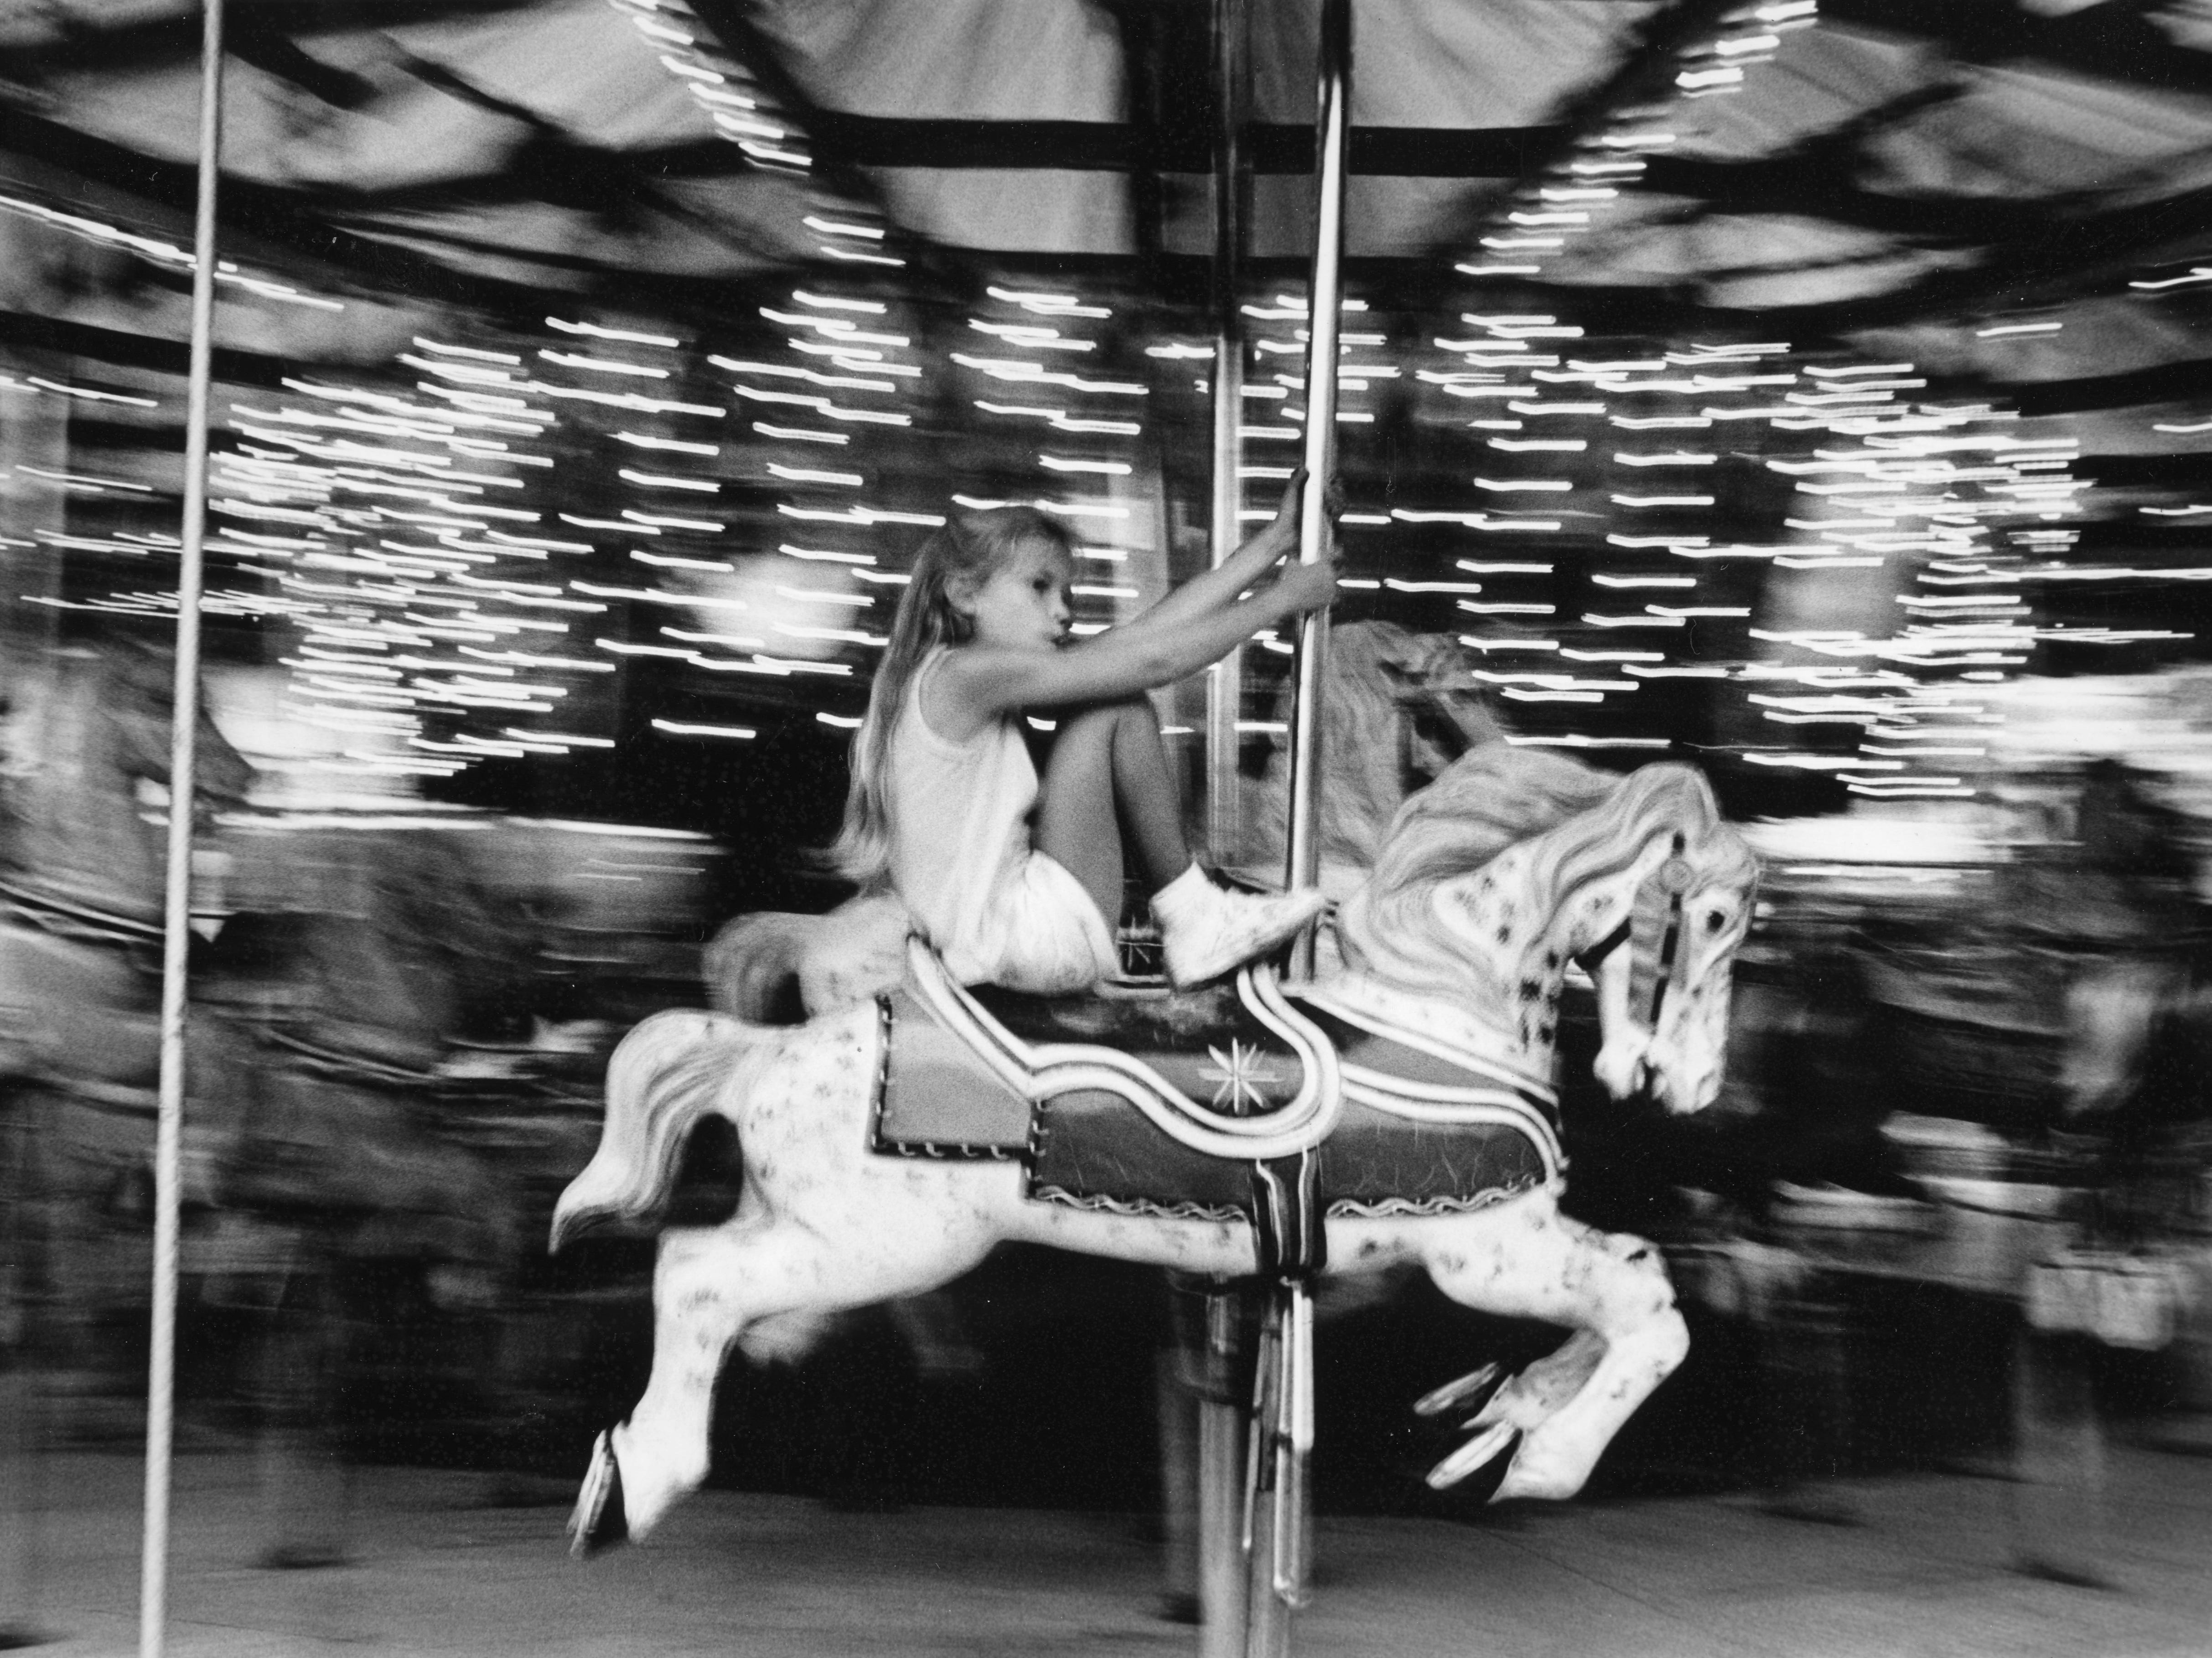 Stephanie Humphrey, 7, rides the merry-go-round at the Tennessee Valley Fair in 1988.